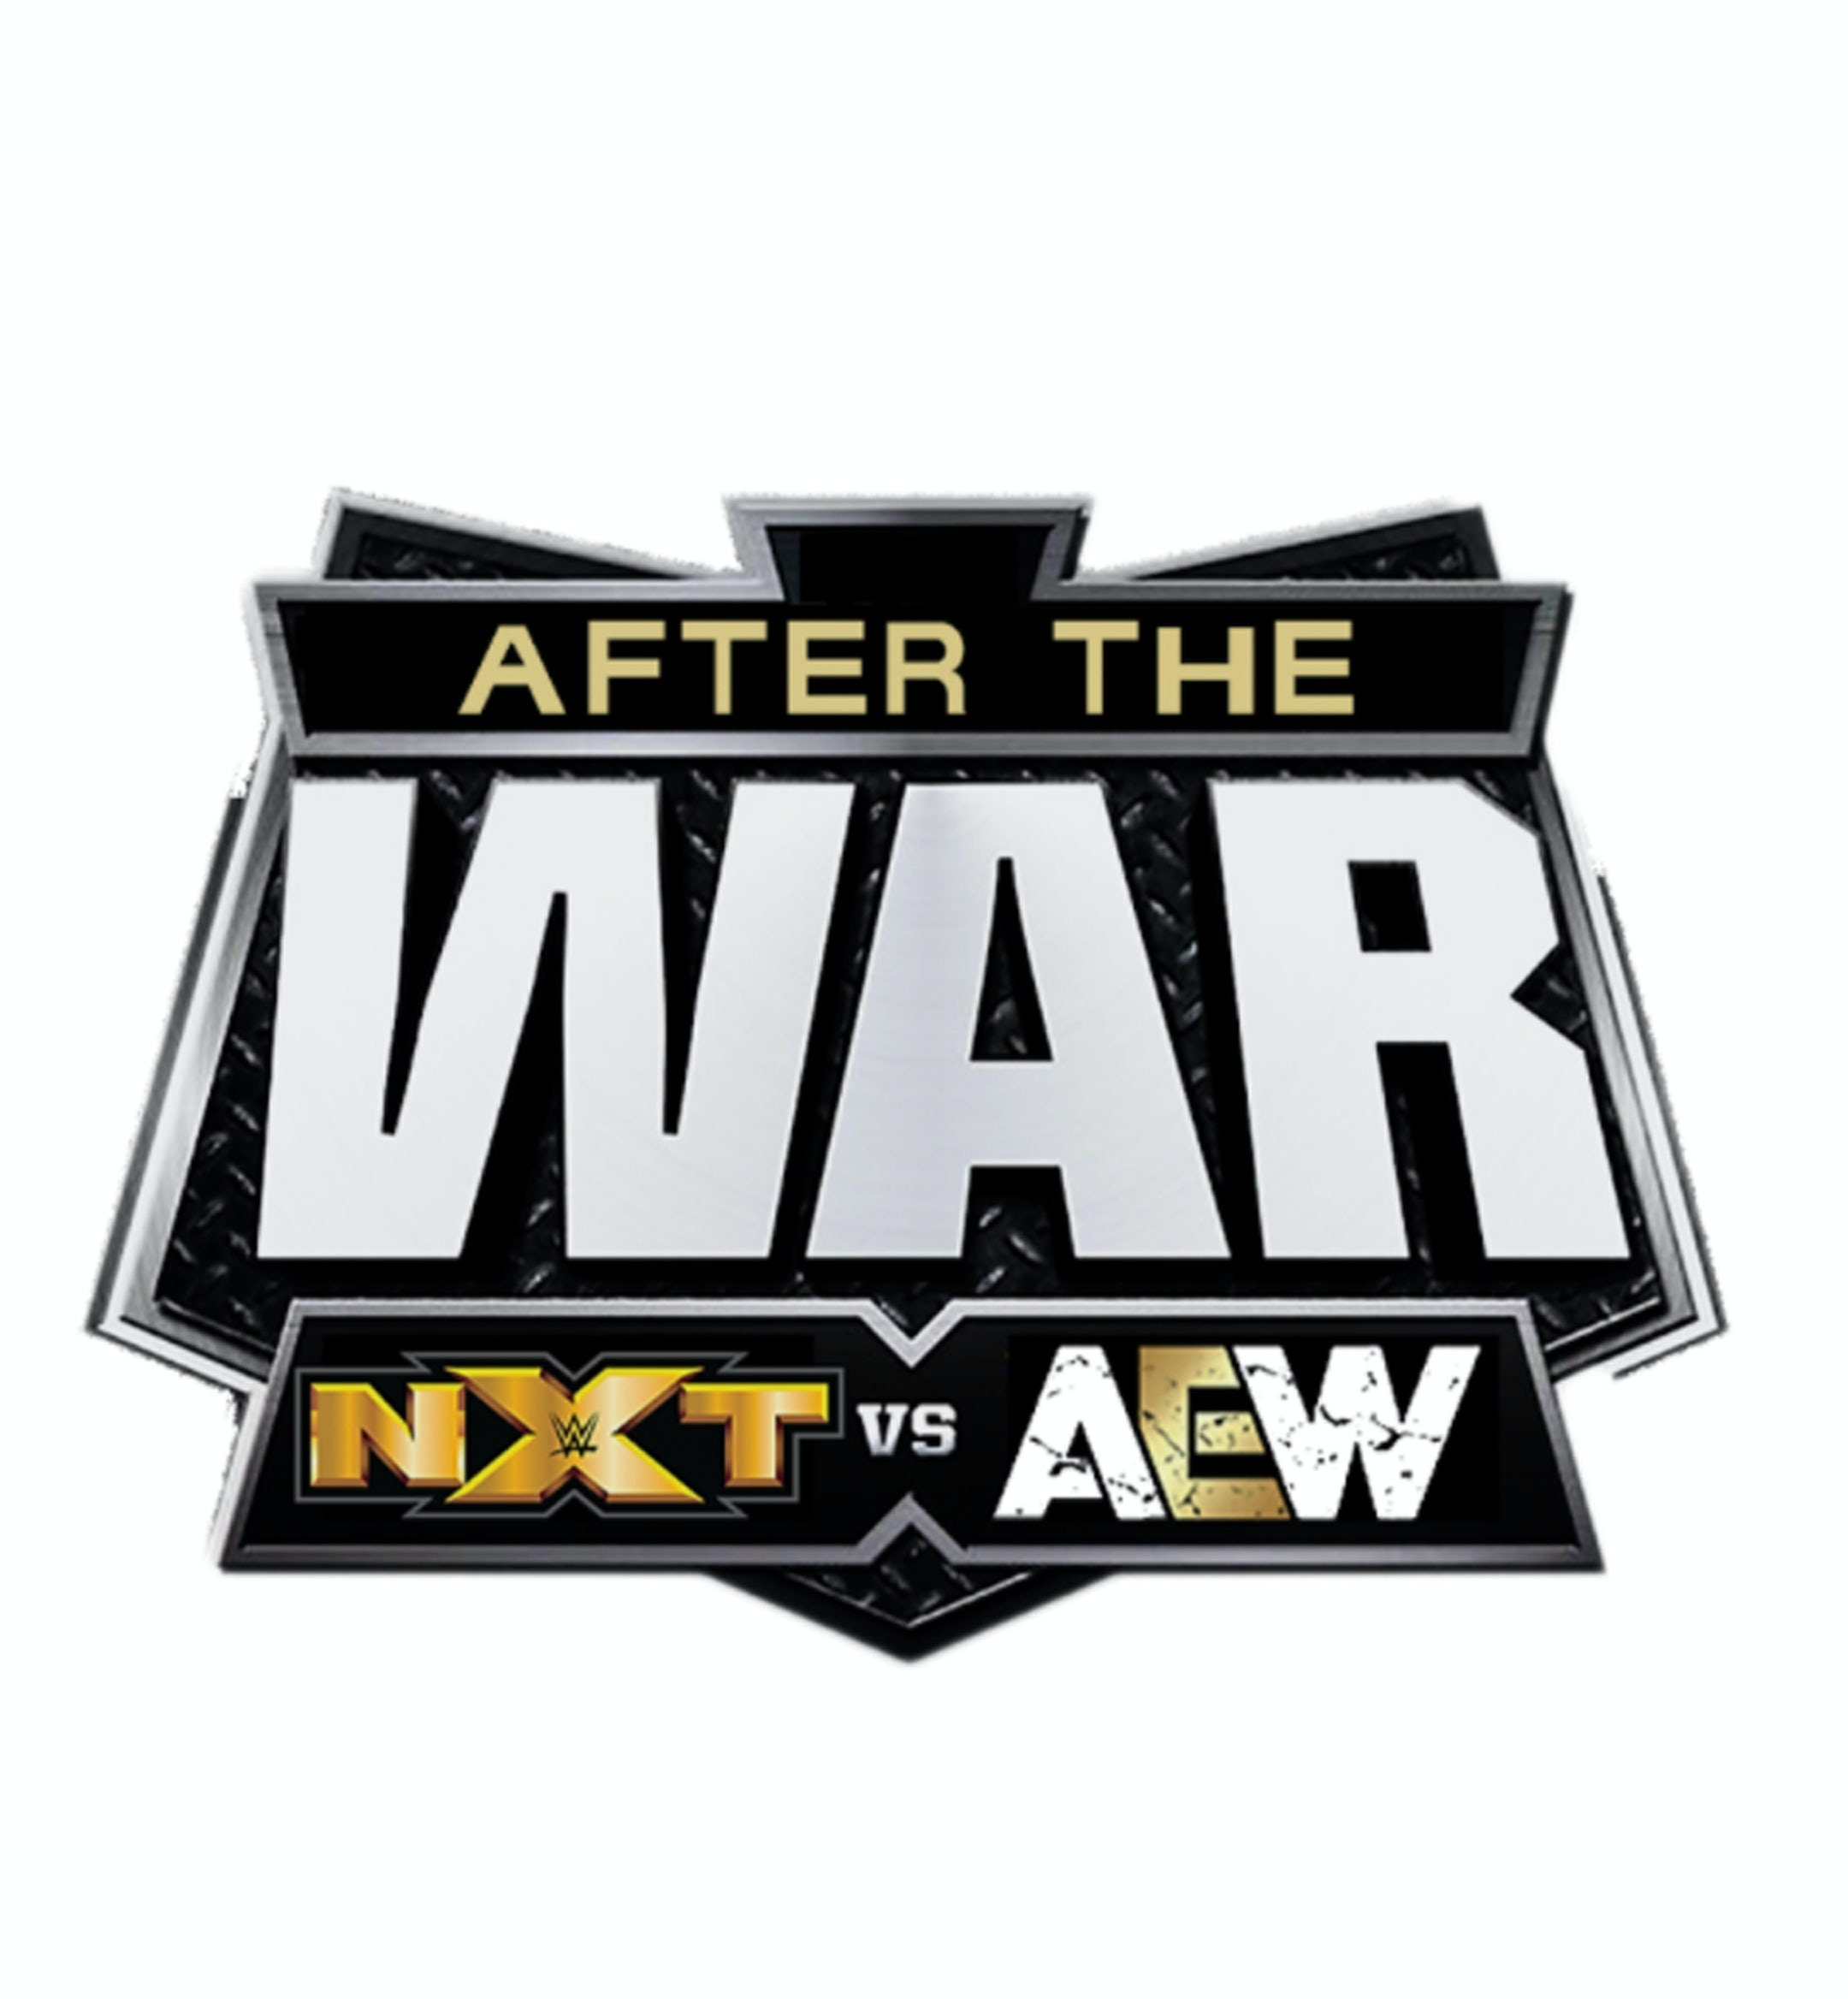 wwe vs aew hero